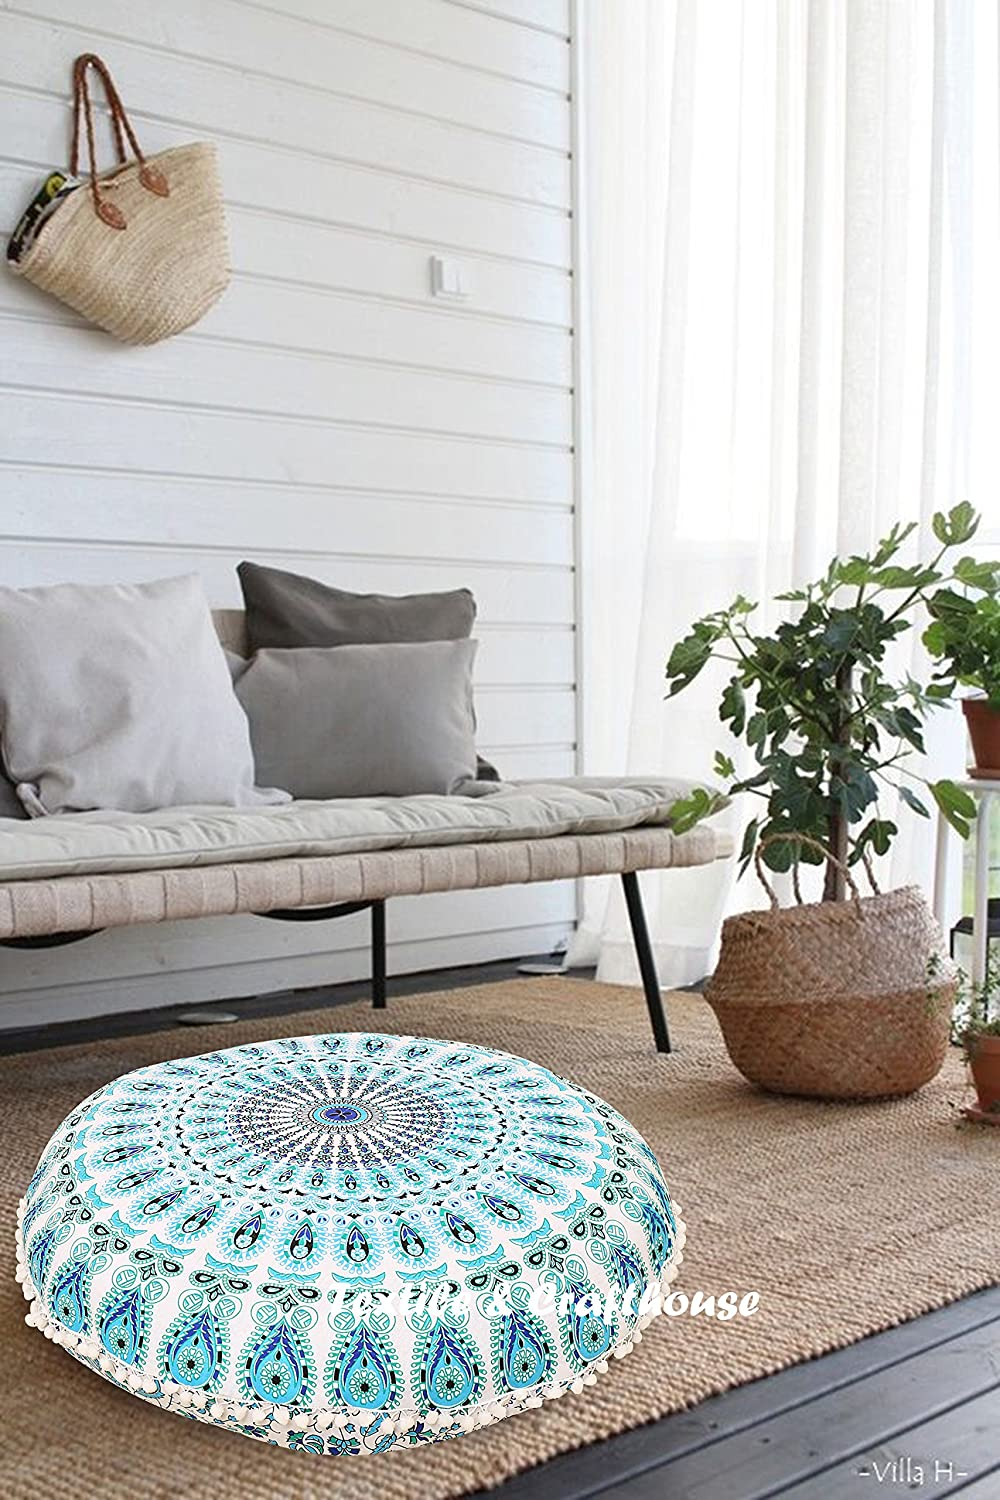 Style -1 TEXTILE/&CRAFT HOUSE Decorative Mandala Round Floor Pillow Cushion Cover Pouf Cover Indian Bohemian Ottoman Poufs Cover With Pom Pom outdoor Cushion Cover